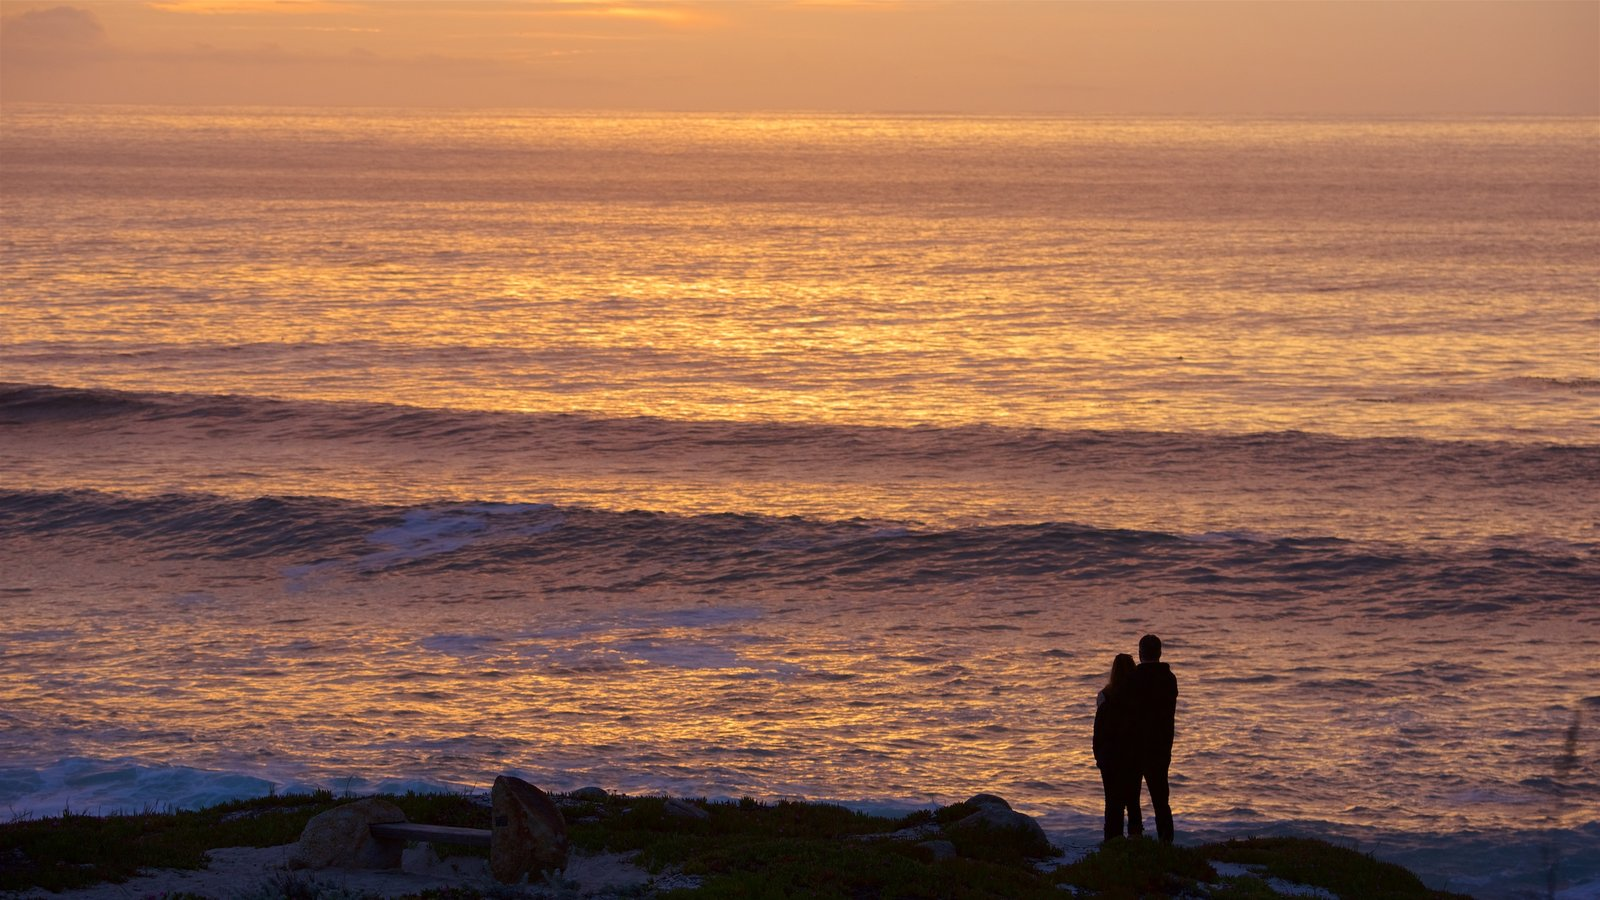 17-Mile Drive showing a beach and a sunset as well as a couple